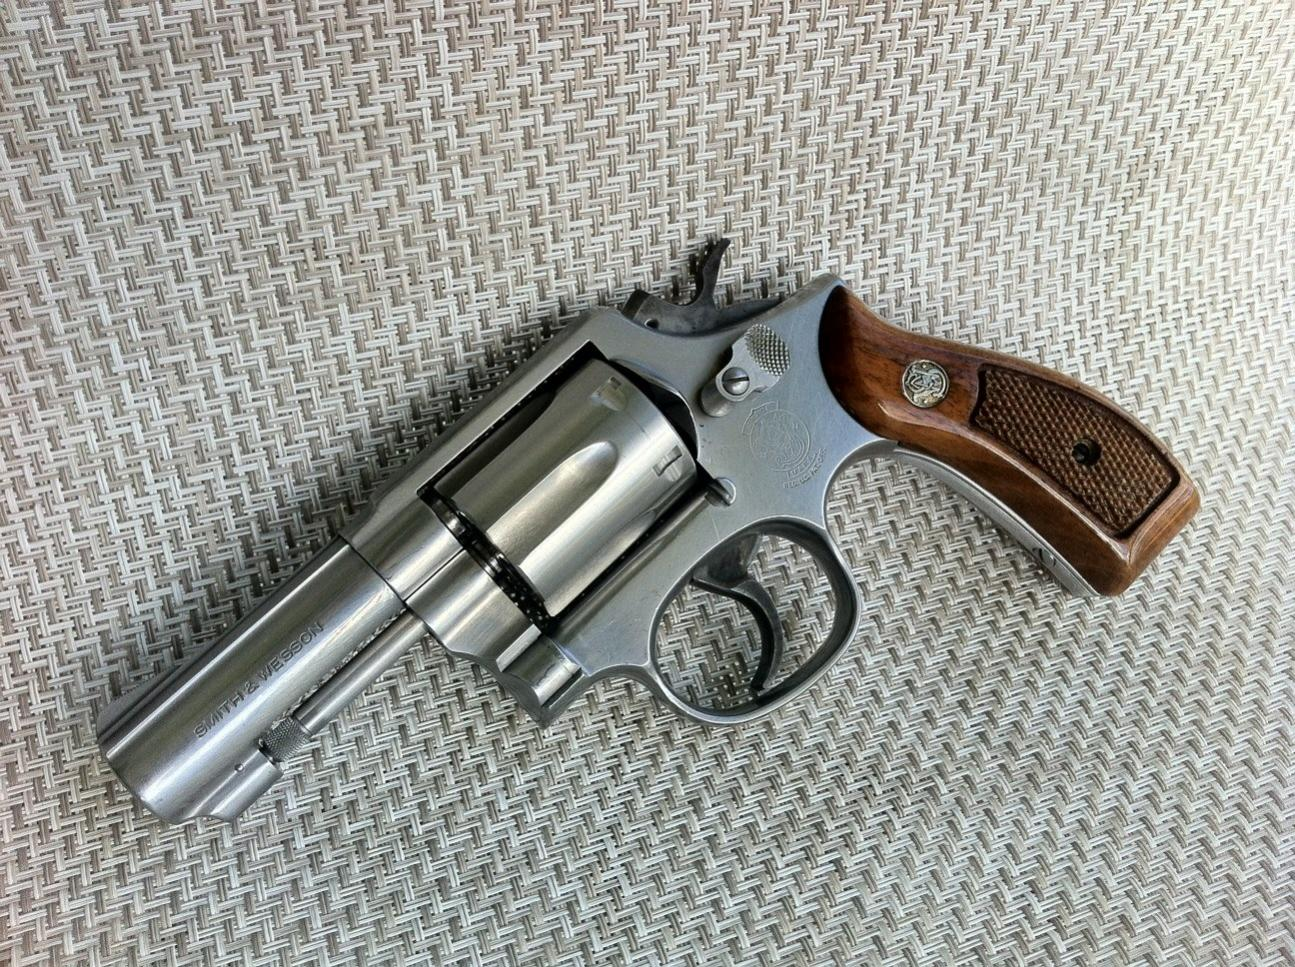 New (to me) vintage Smith and Wesson Model 13 revolver, nickel finish, info?-image-6.jpg